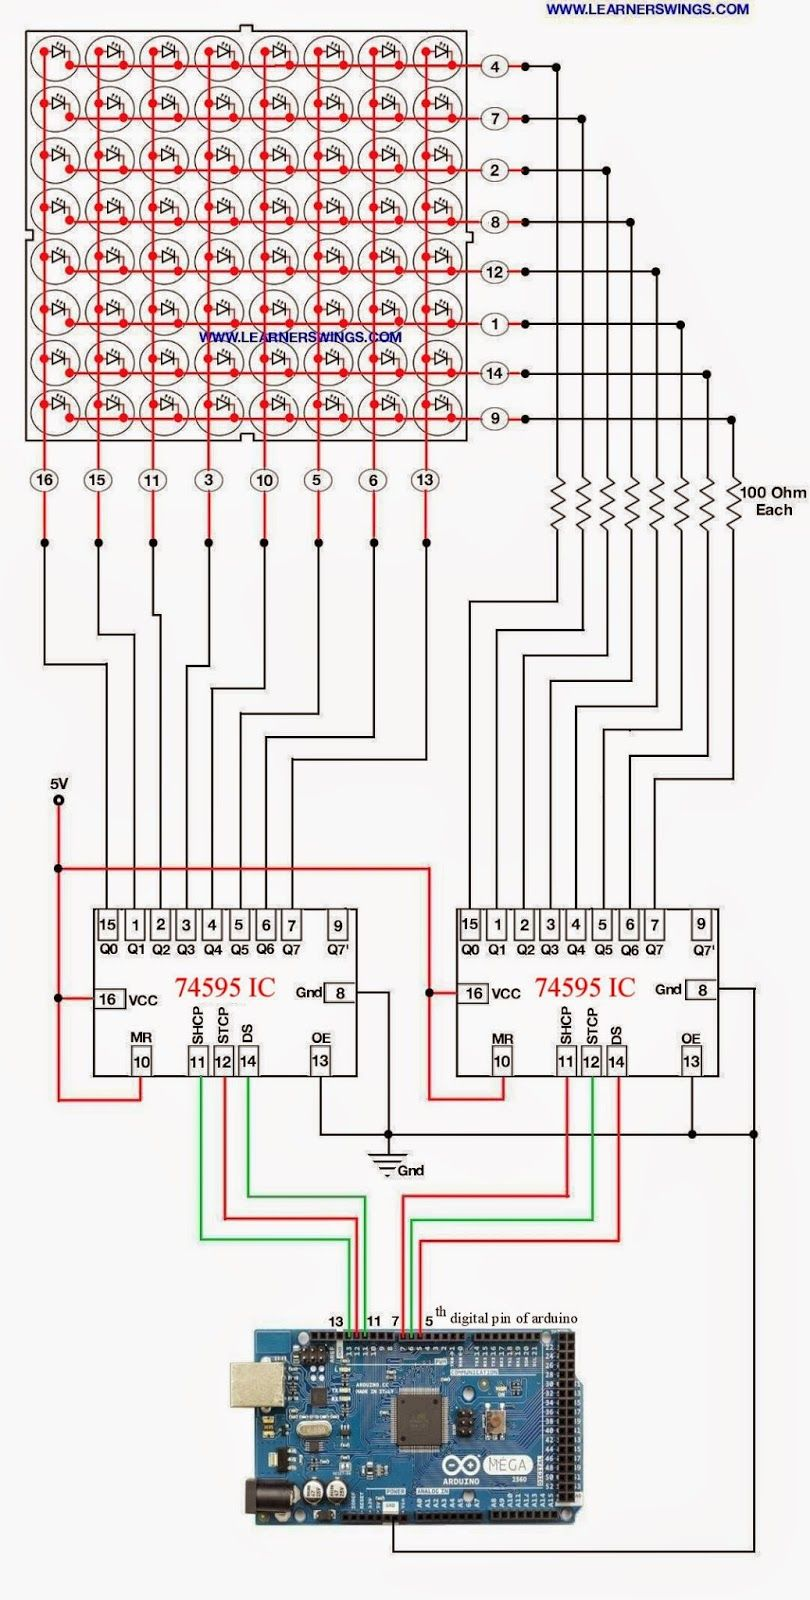 Simple method to control 88 led matrix using shift register ic led matrix using shift register ic 74595 and arduino mega read more at httplearnerswings201408simple method to control 88 led matrix ml swarovskicordoba Choice Image